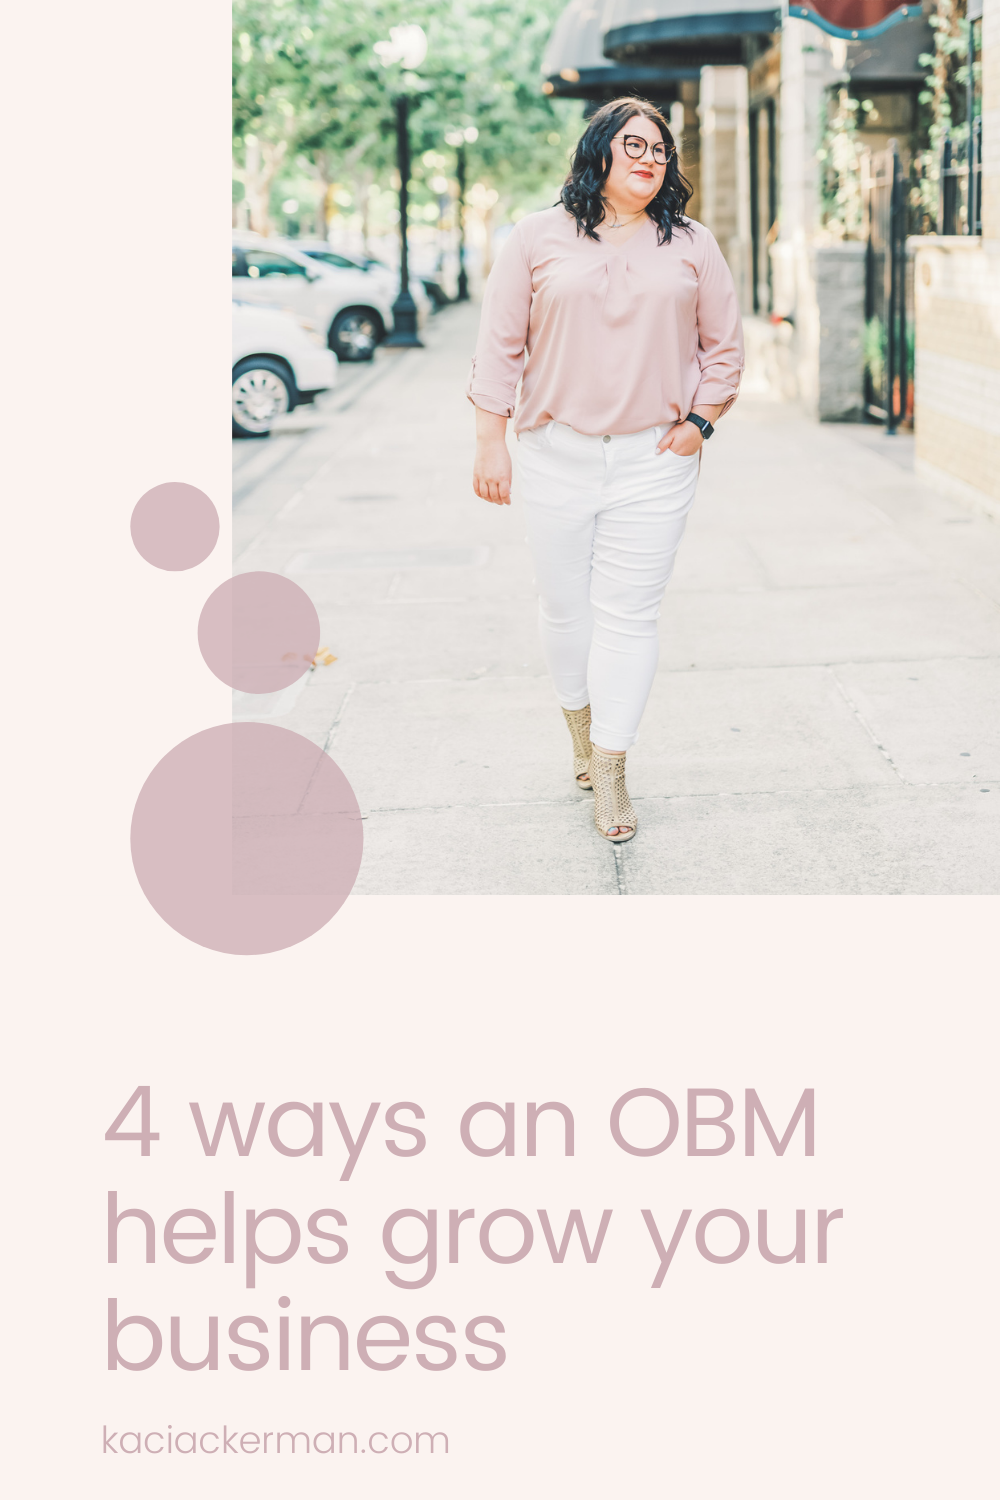 4 ways an OBM helps grow your business